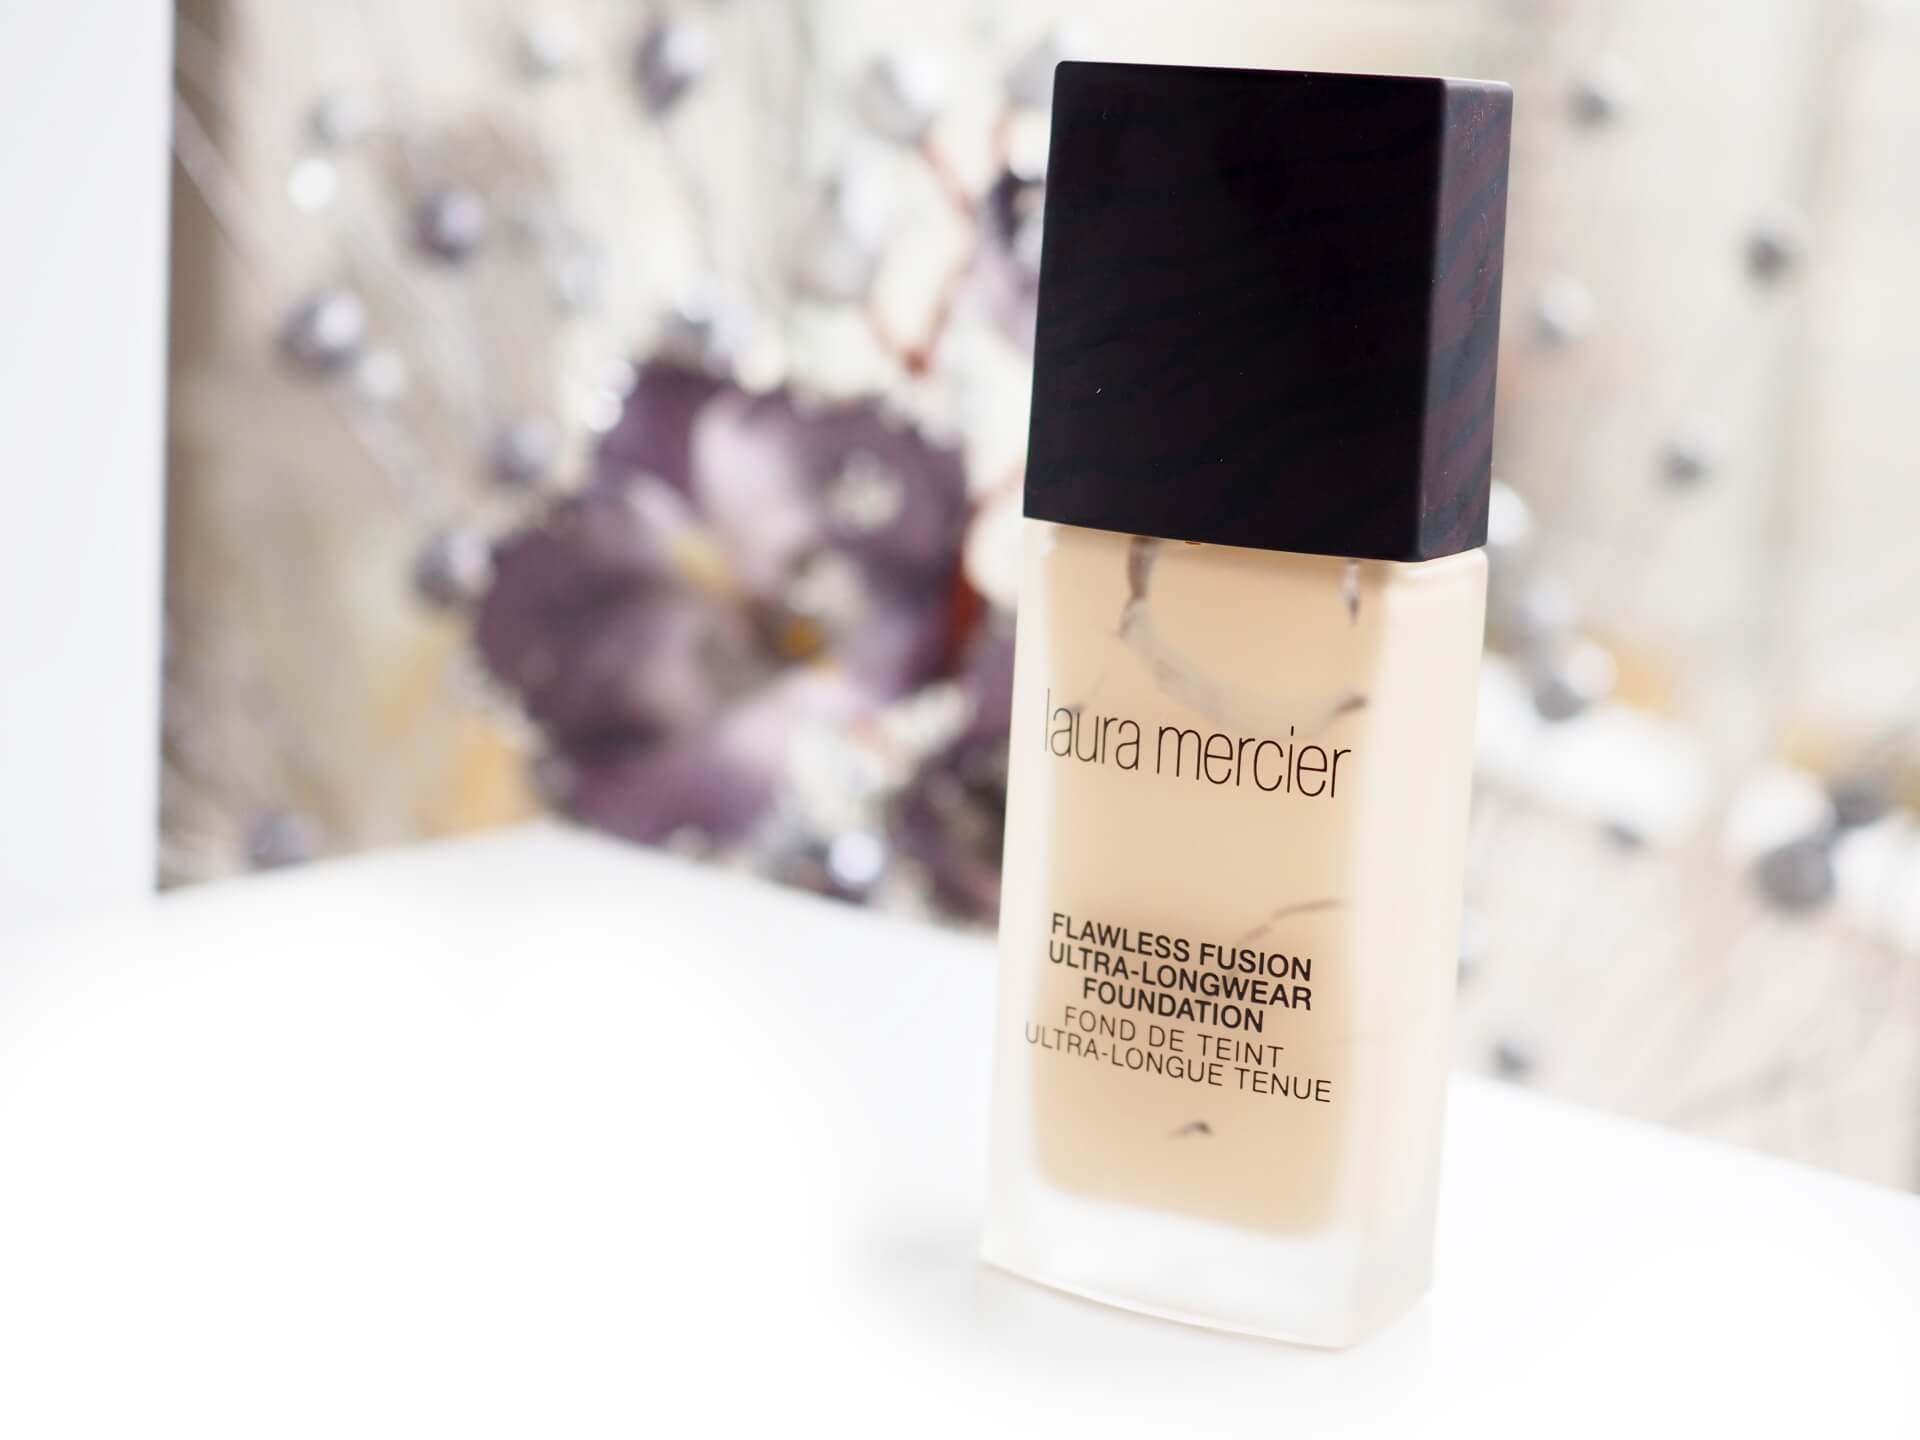 Laura Mercier Flawless Fusion